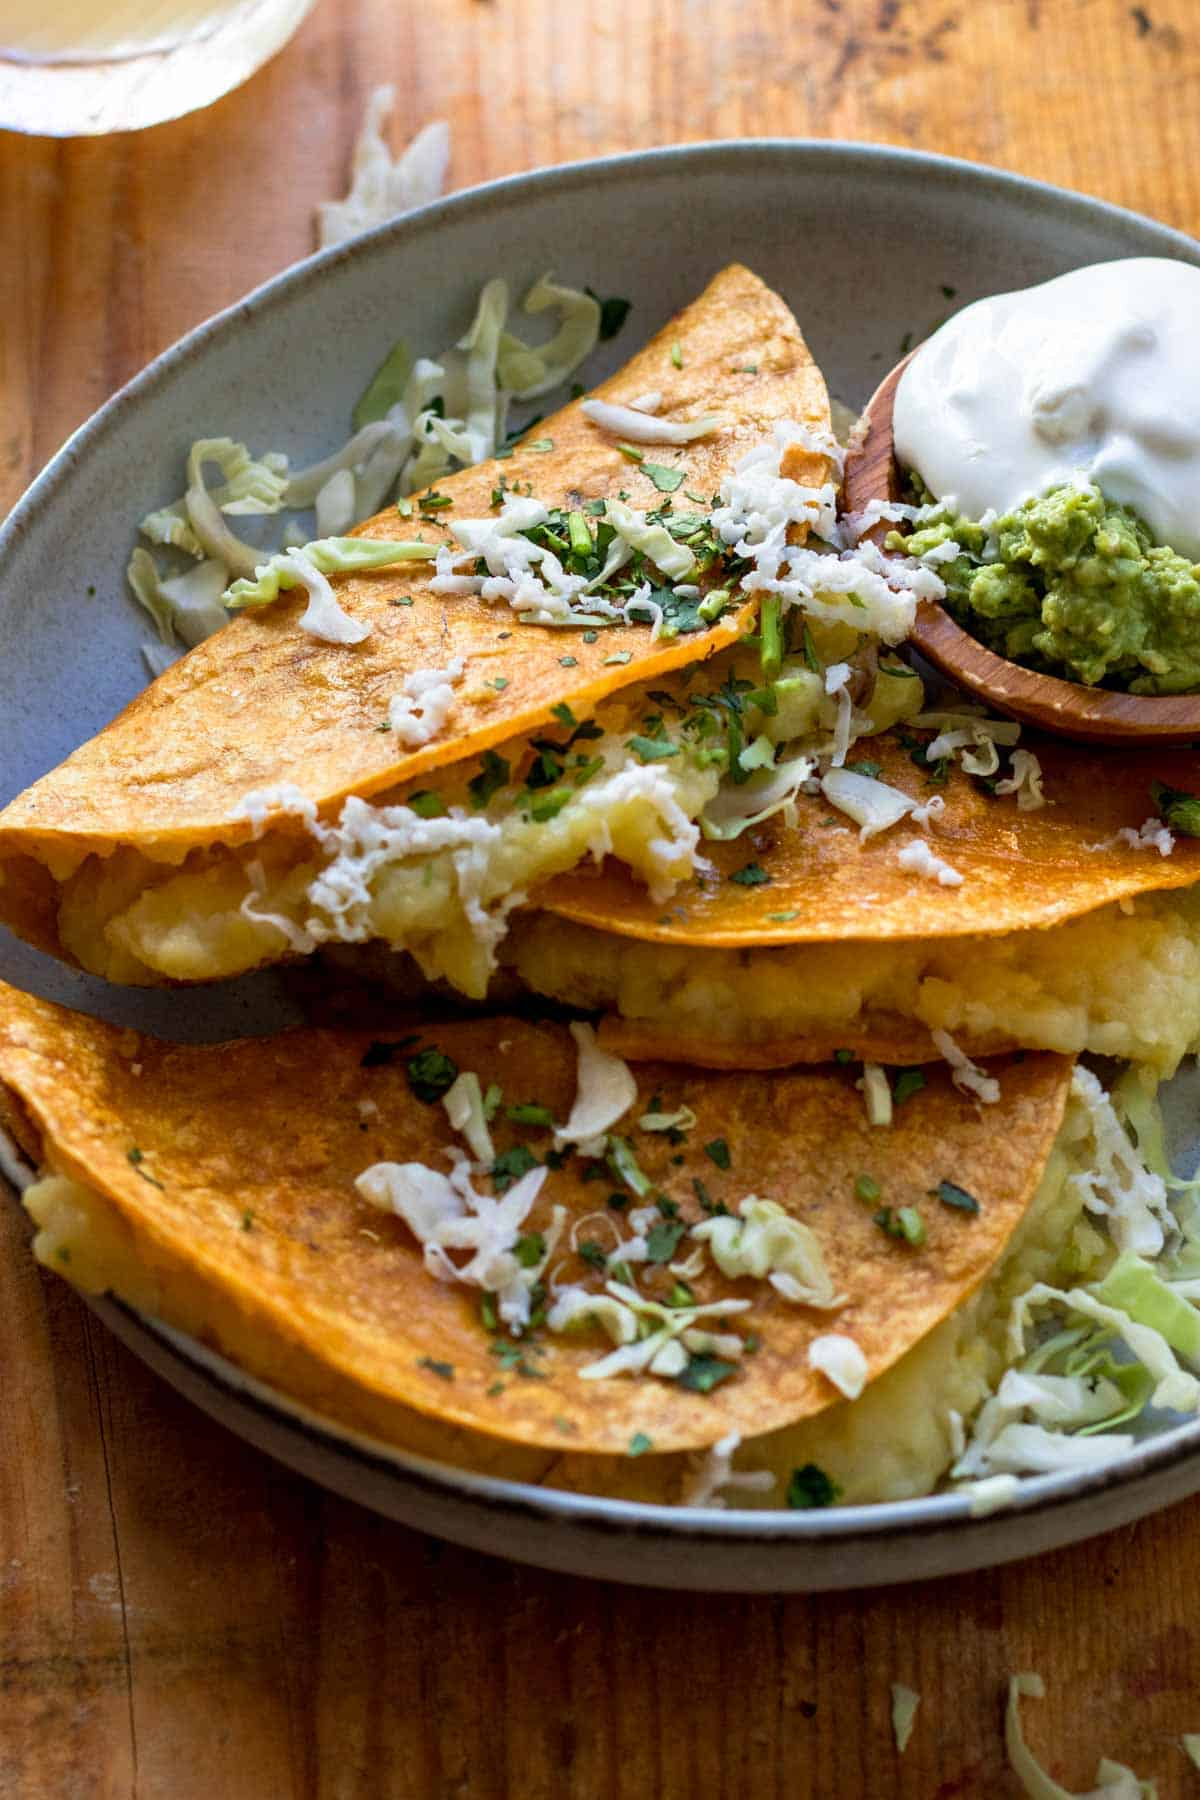 Three tacos on plate topped with shredded cabbage.